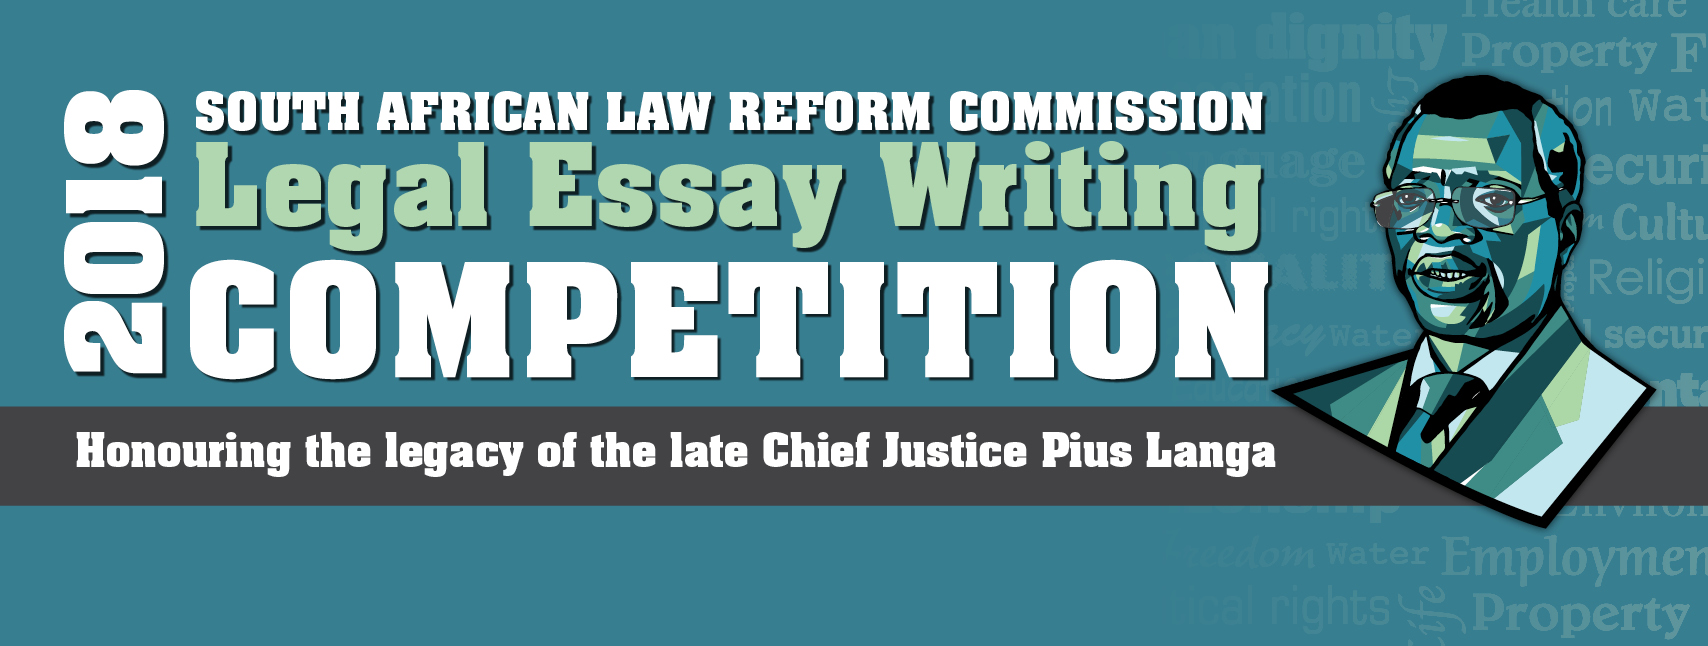 Thesis Statement Examples Essays South African Law Reform Commission Legal Essay Competition  Up To  R Compare And Contrast Essay Examples High School also High School Memories Essay South African Law Reform Commission Legal Essay Competition   Business Plan Writing Services Singapore